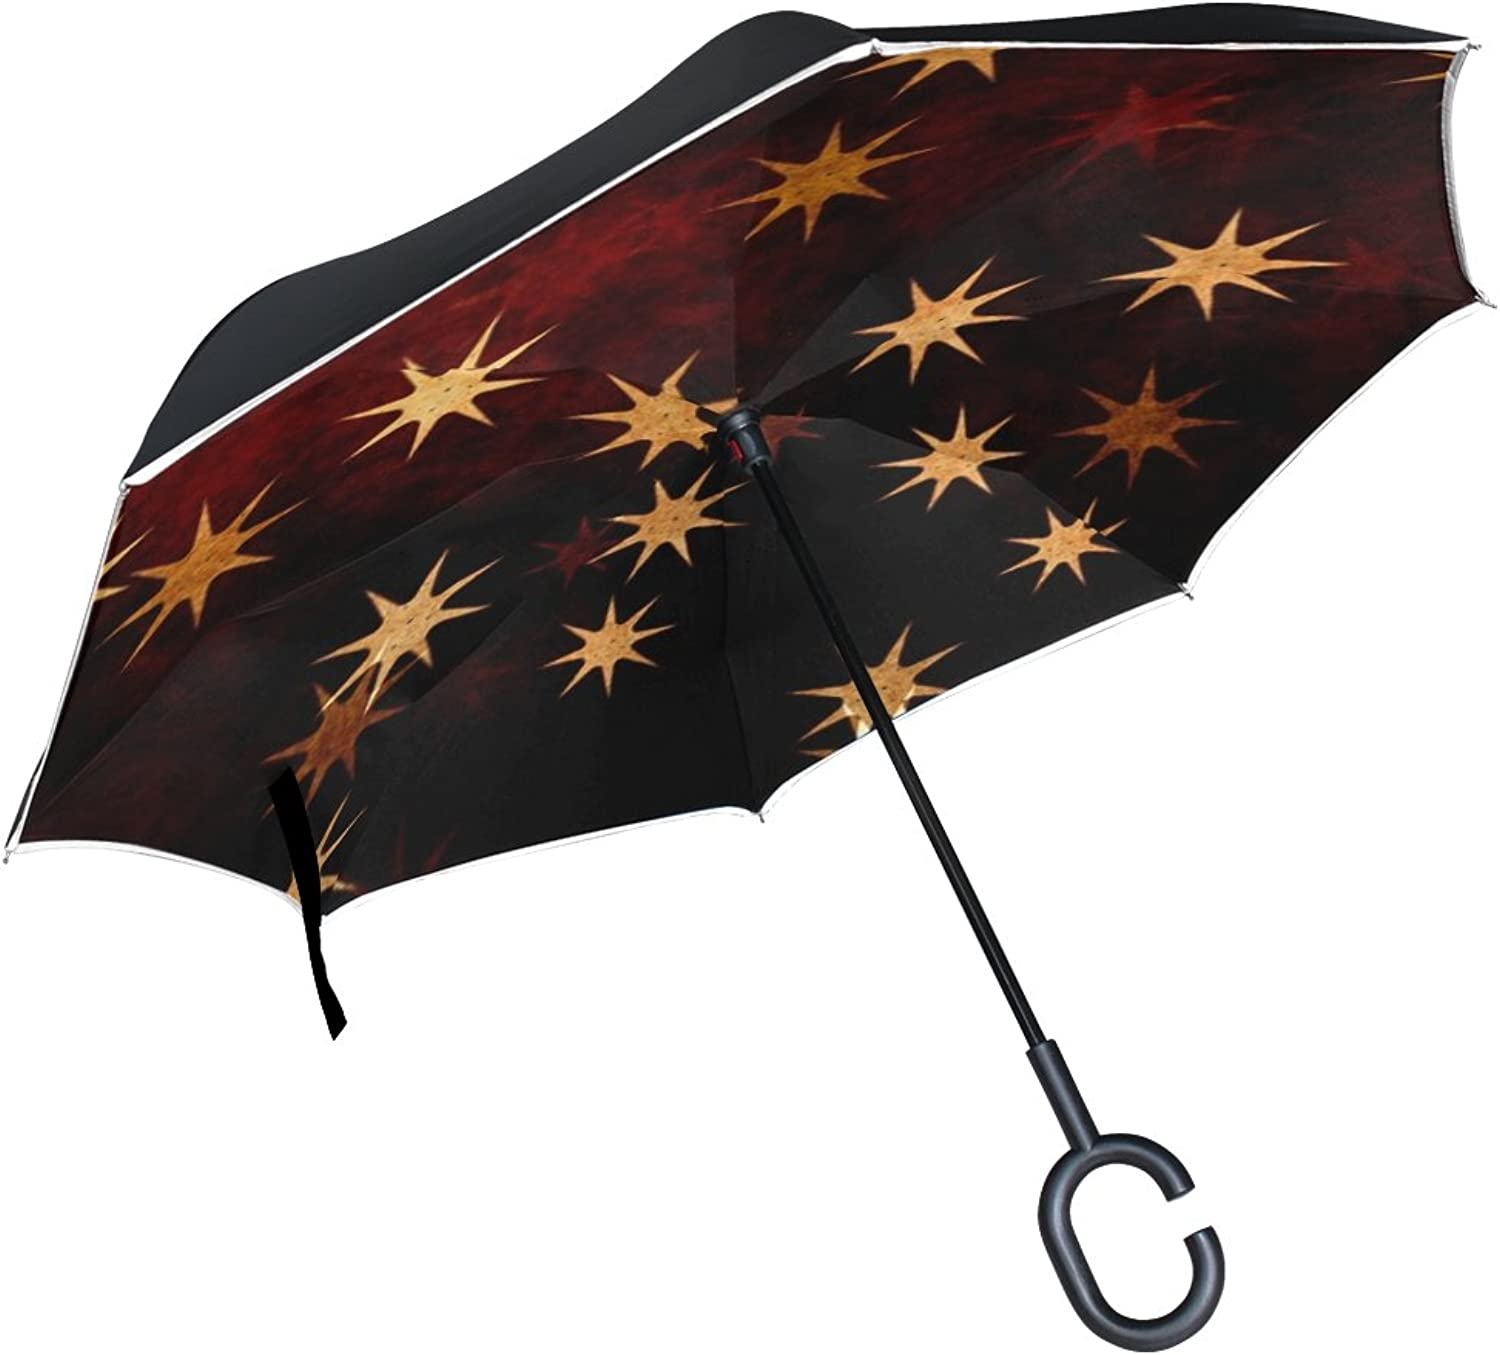 Double Layer Ingreened Stars gold orange Yellow Brown Red Christmas Umbrellas Reverse Folding Umbrella Windproof Uv Predection Big Straight Umbrella for Car Rain Outdoor with CShaped Handle